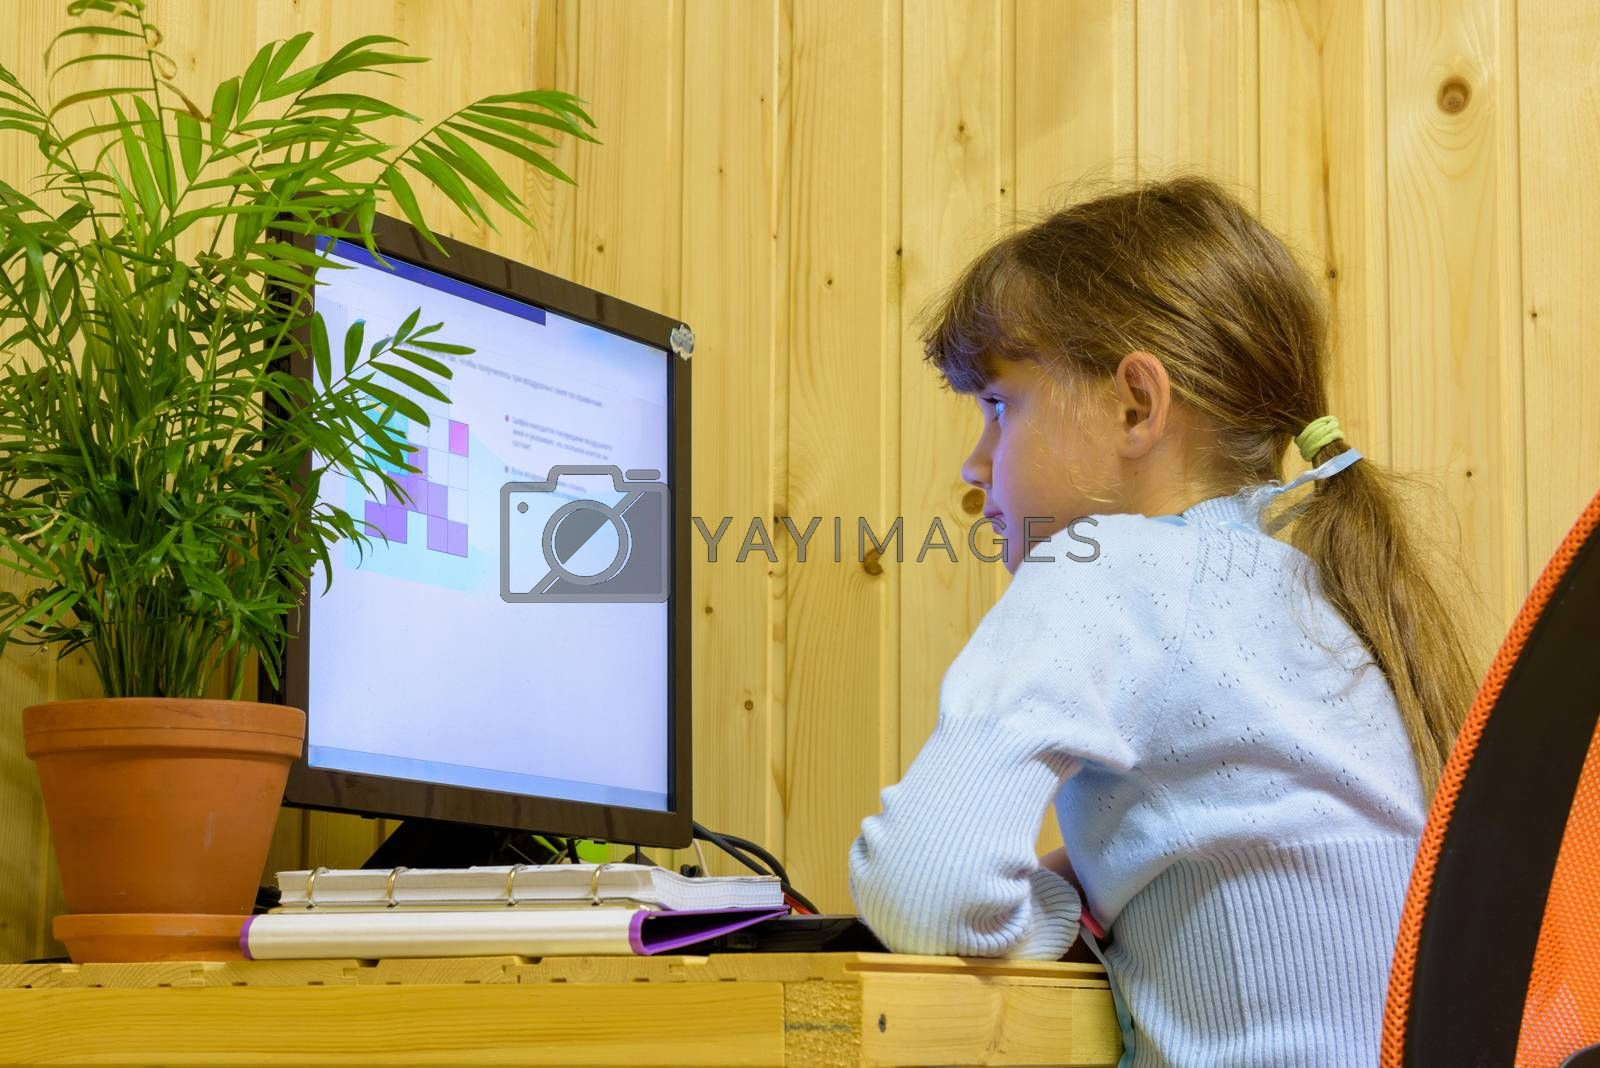 A girl solves a problem on a computer during distance learning